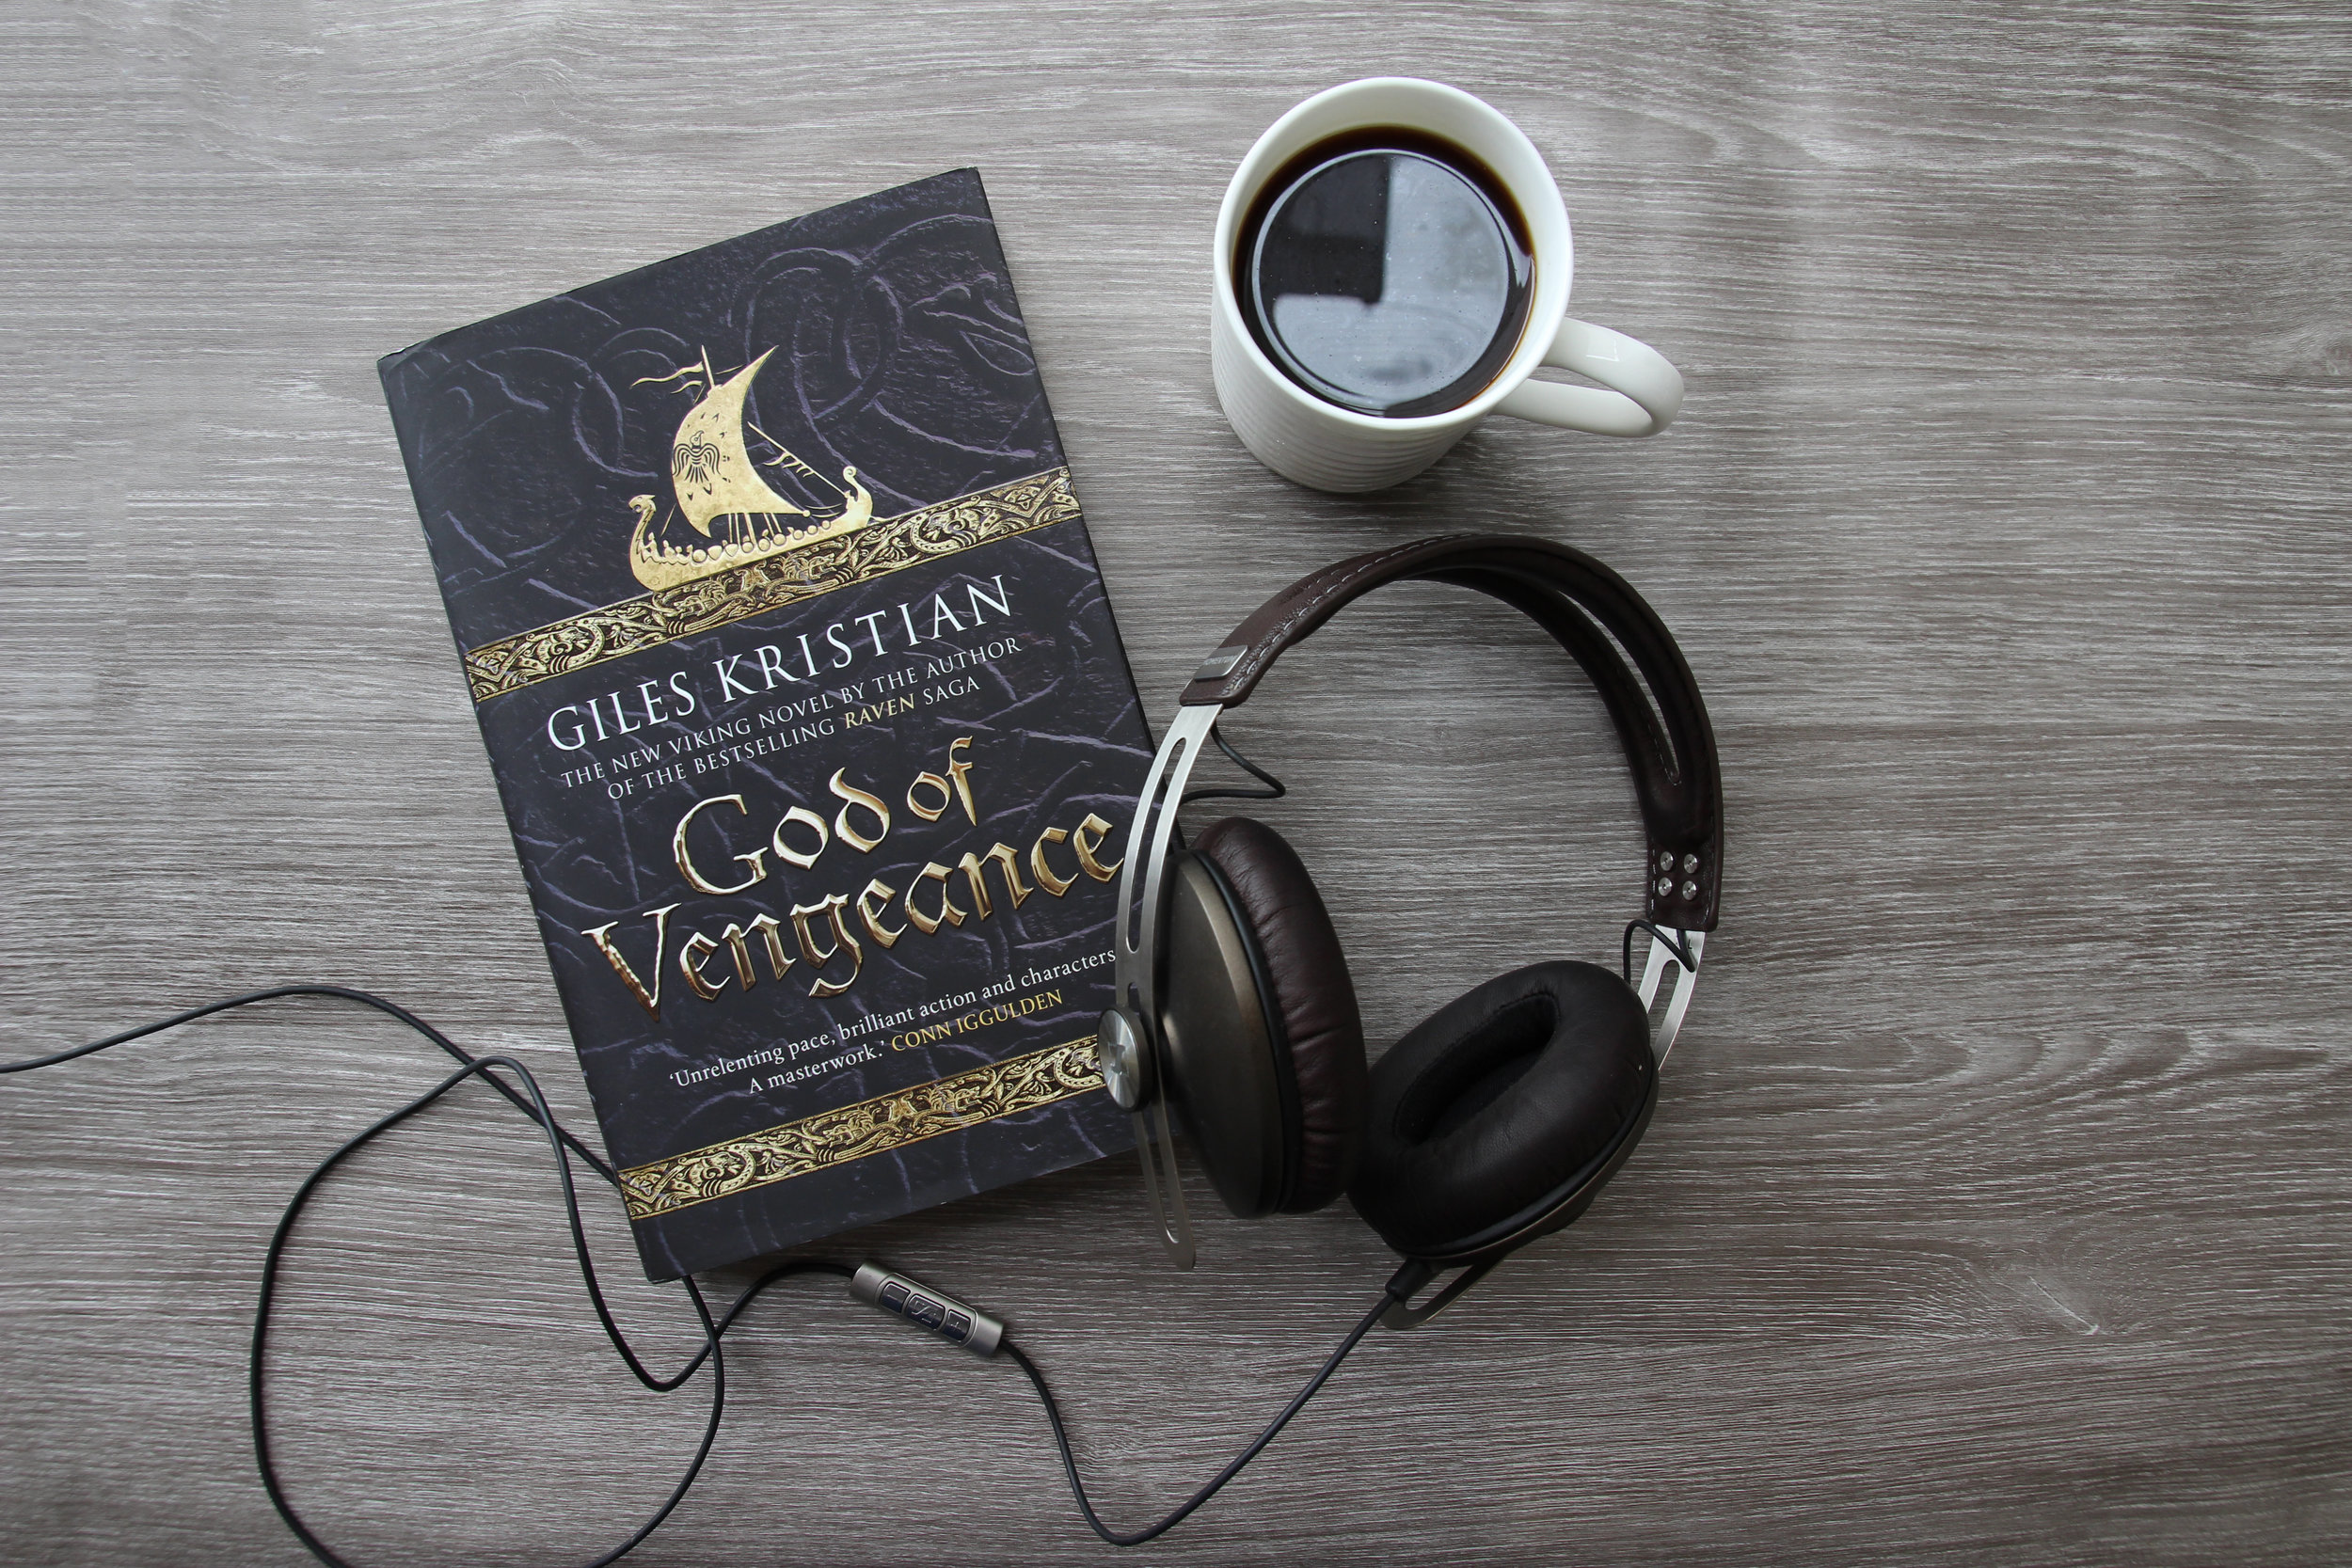 God of Vengeance Audio Book by Giles Kristian